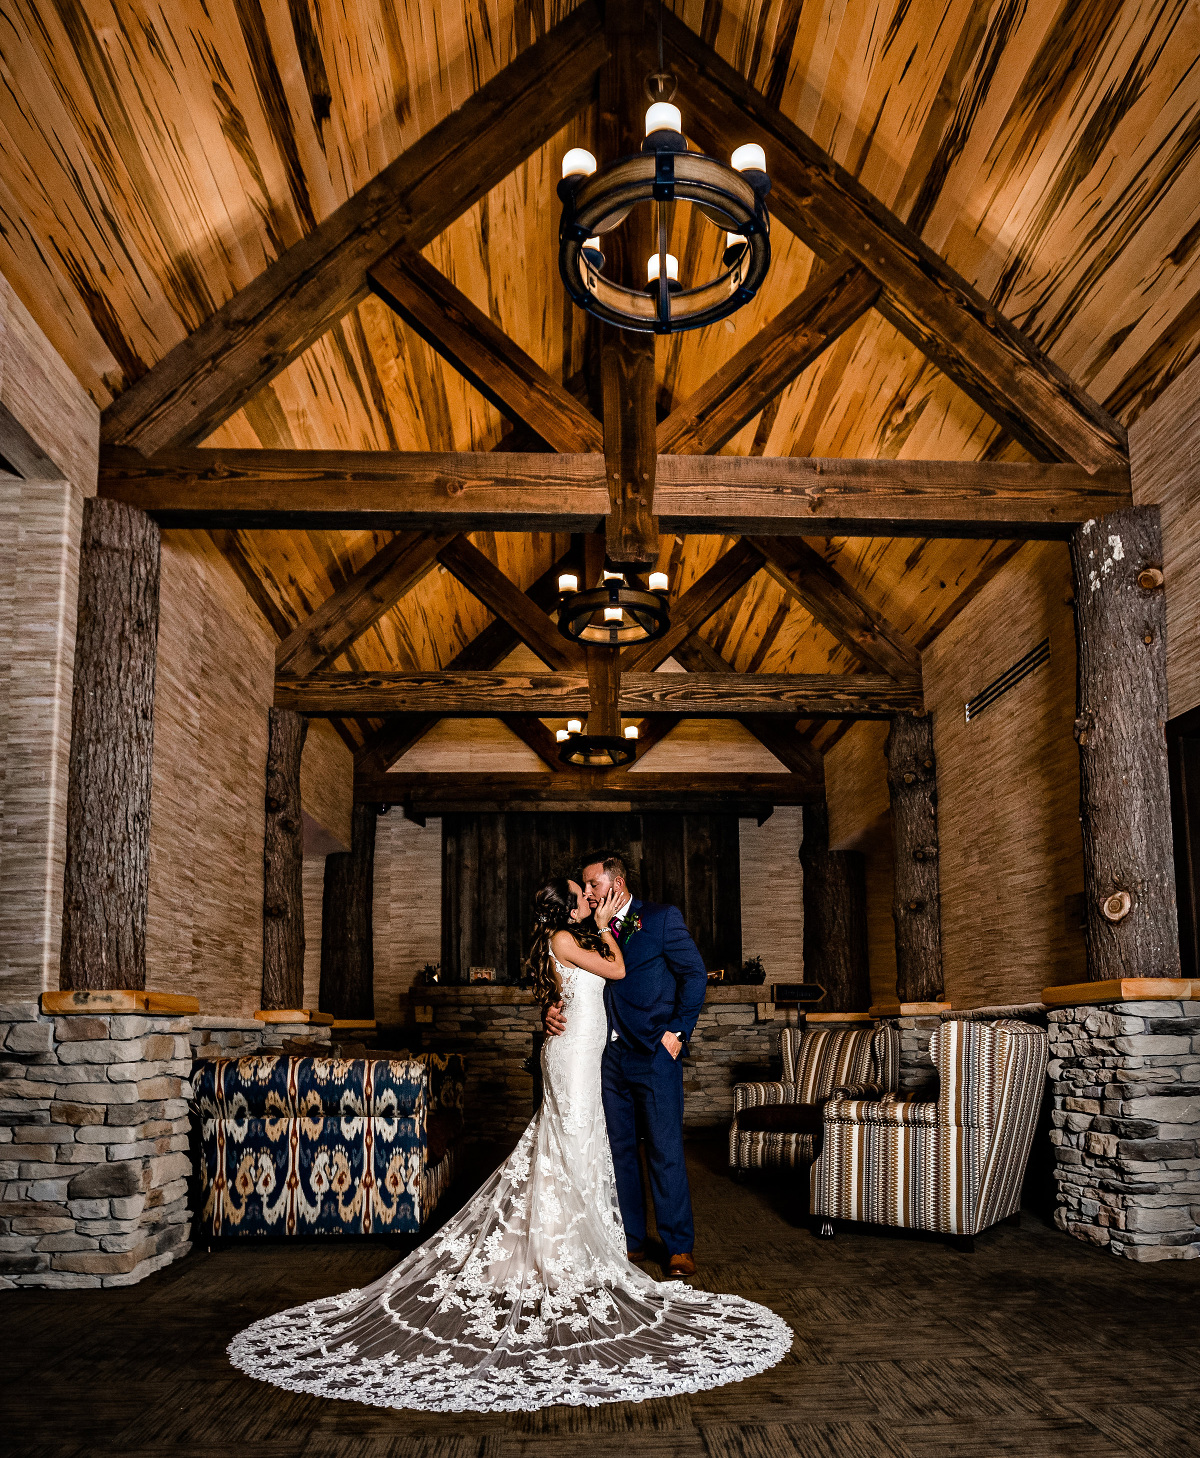 Timber frame bents frame the more intimate spaces of Tailwater Lodge's, The Barn. Photo c Cylinda B Photography.